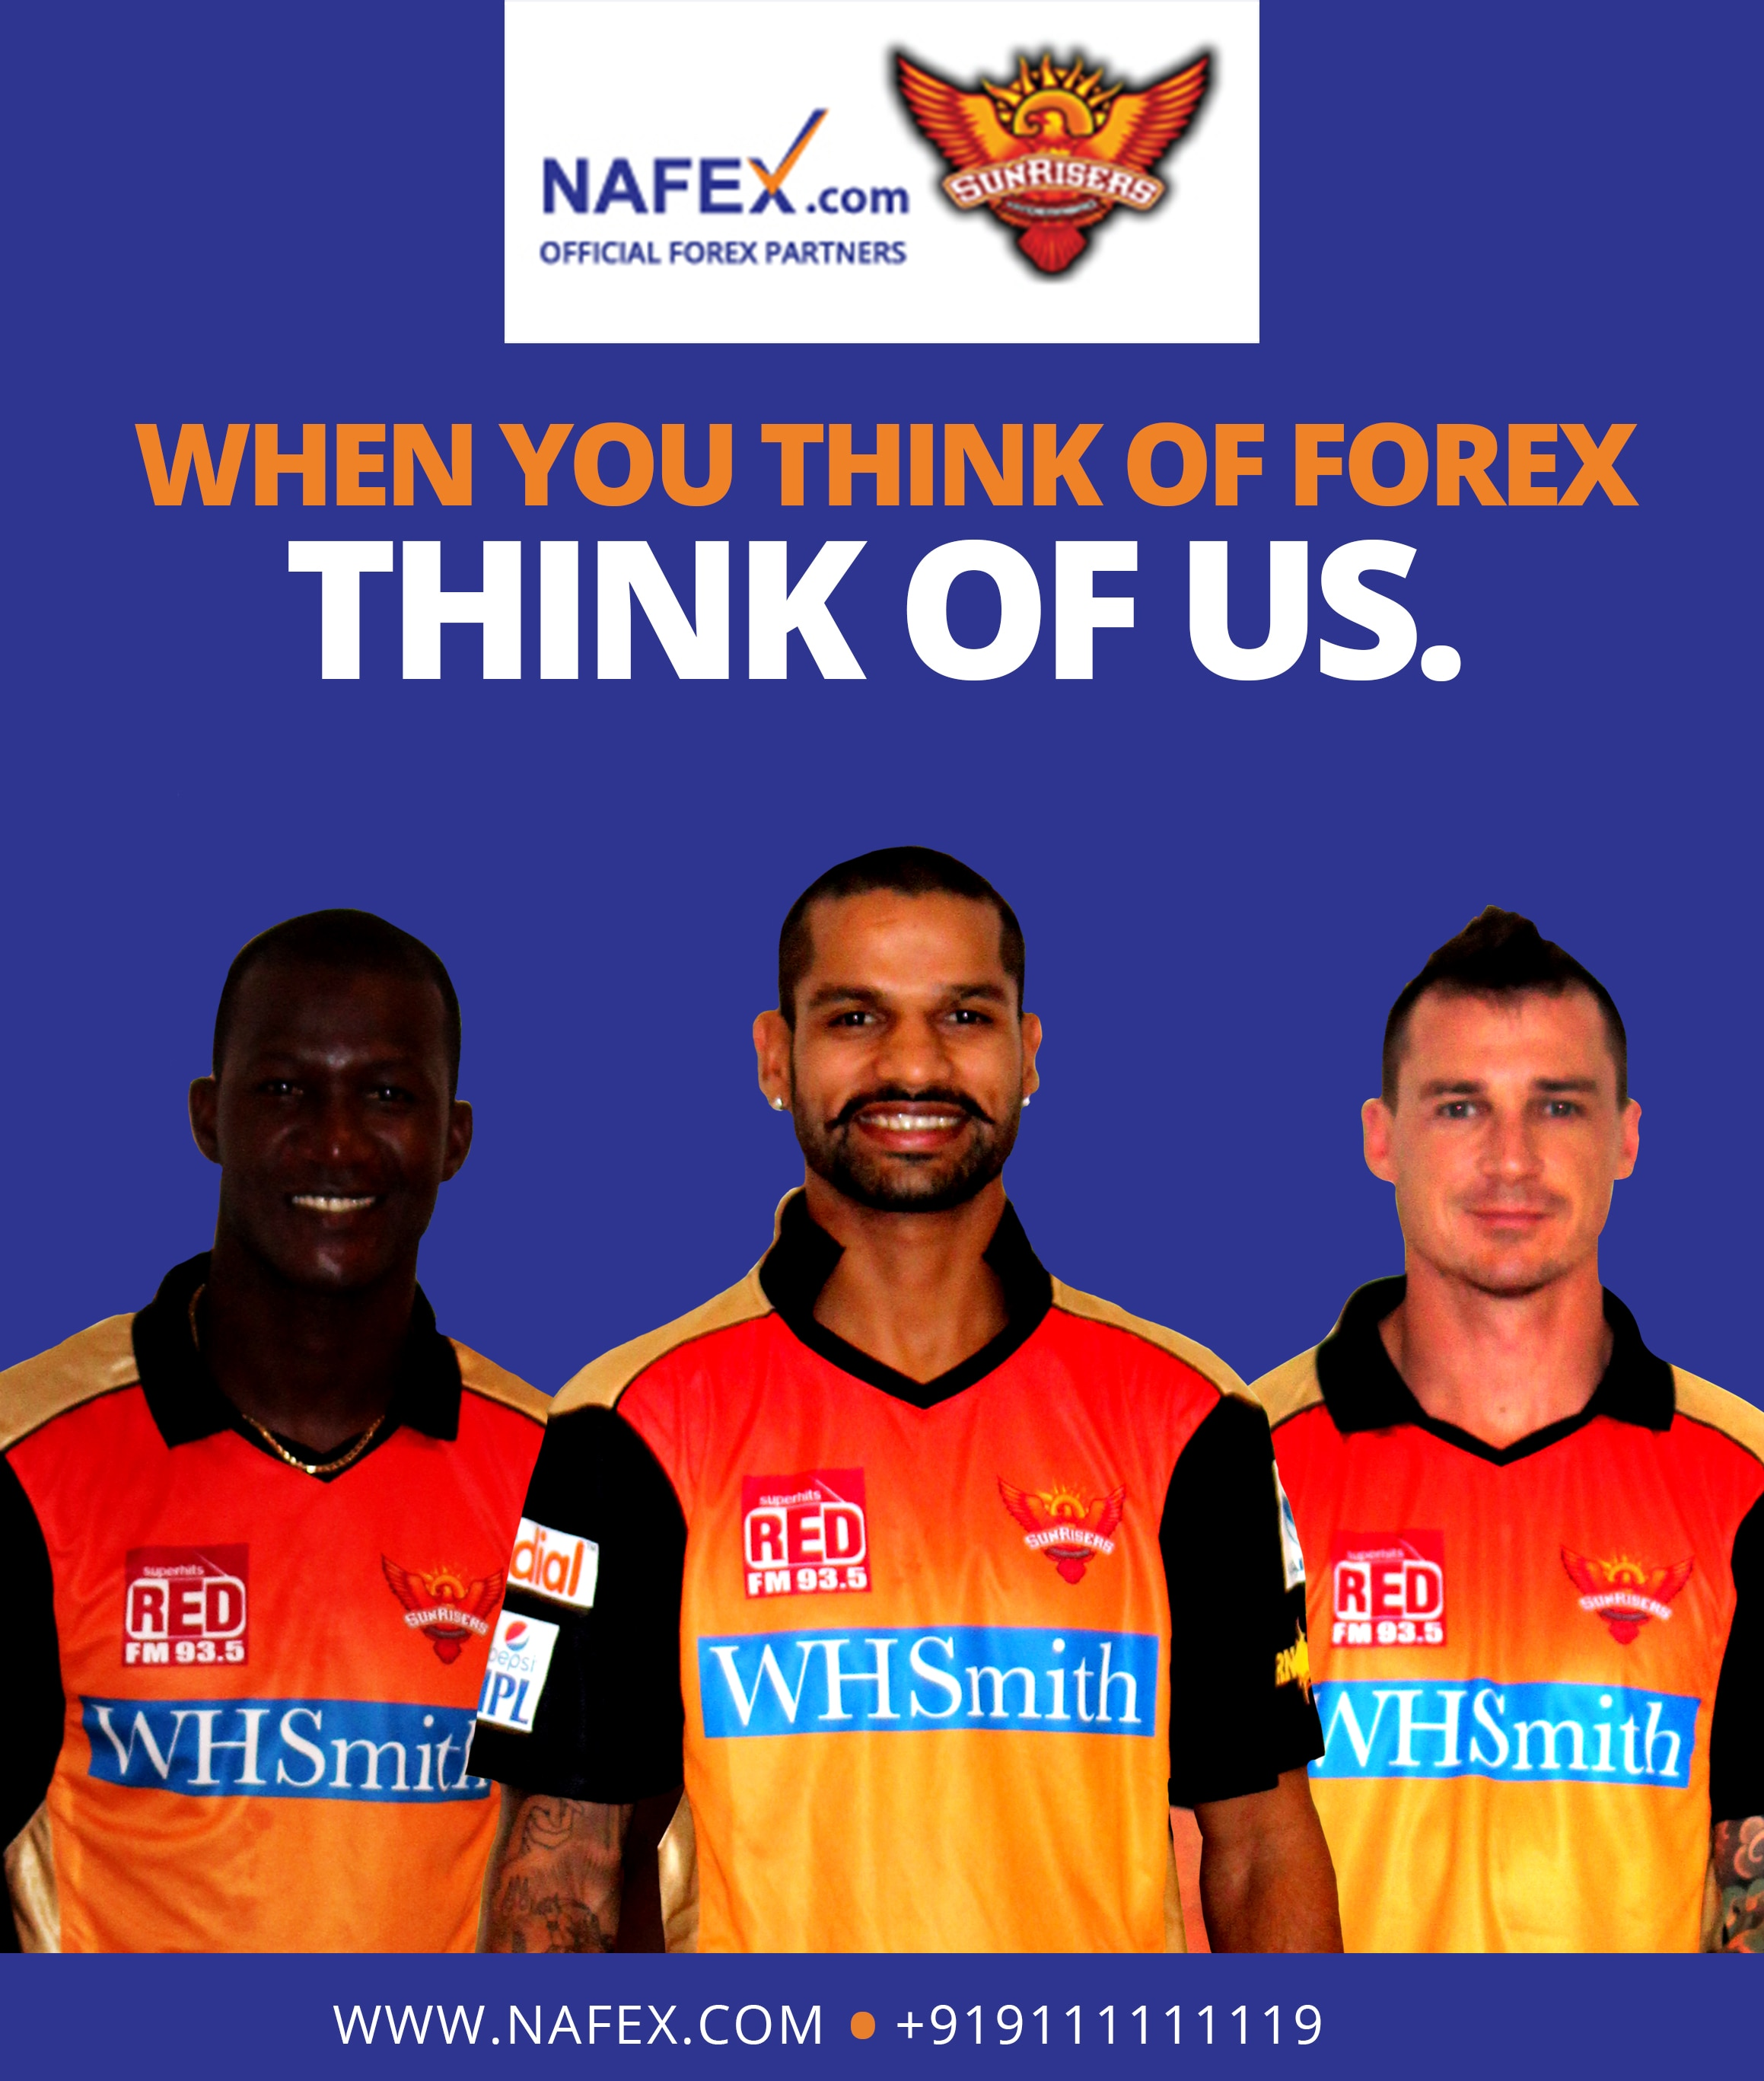 Nafex - Pragati Vihar Foreign Currency Exchange Dealers Agents Pragati Vihar, Online Travellers Cheque & Forex Prepaid Card